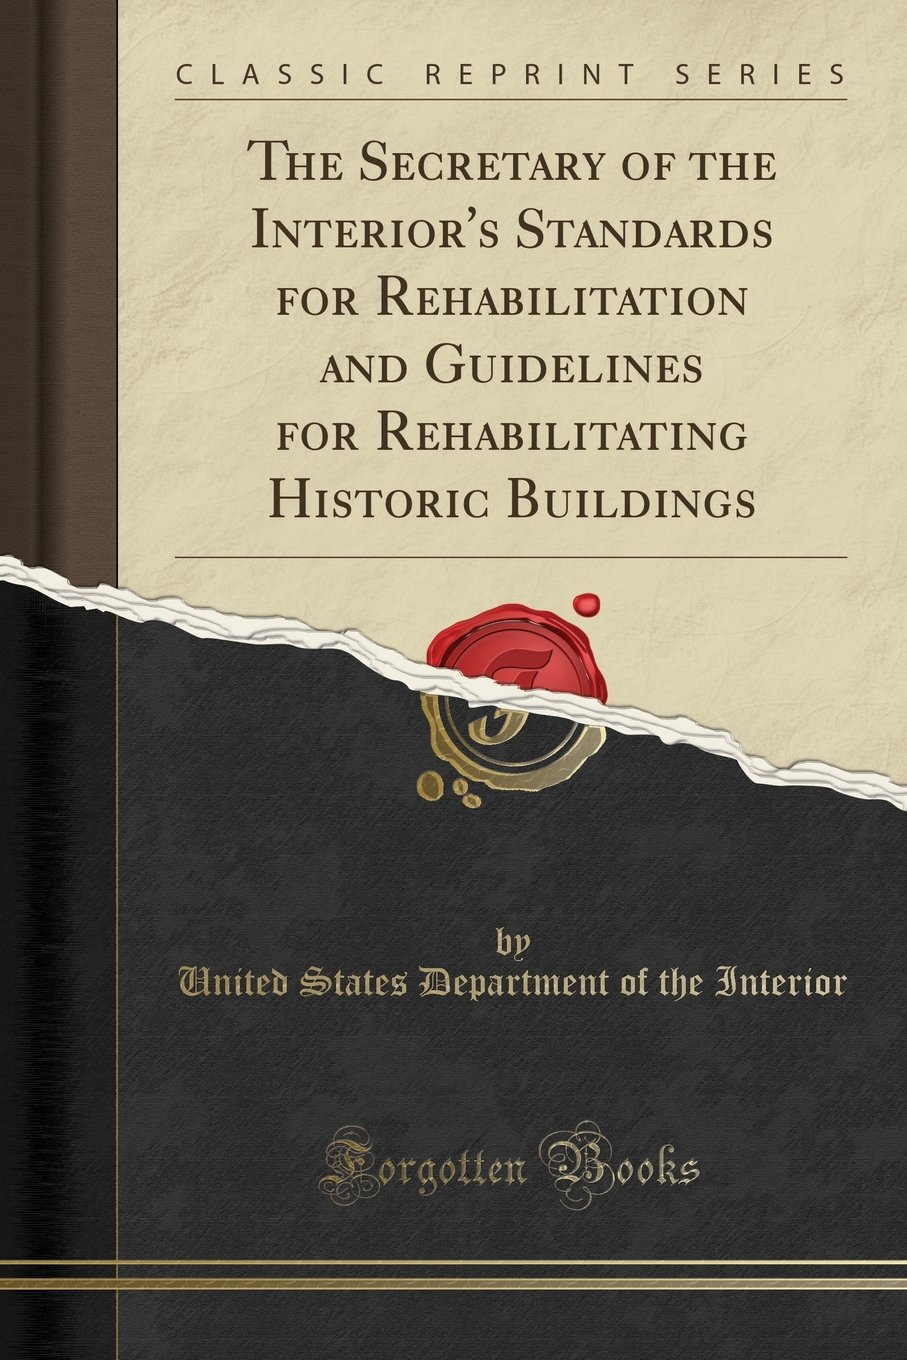 Download The Secretary of the Interior's Standards for Rehabilitation and Guidelines for Rehabilitating Historic Buildings (Classic Reprint) ebook